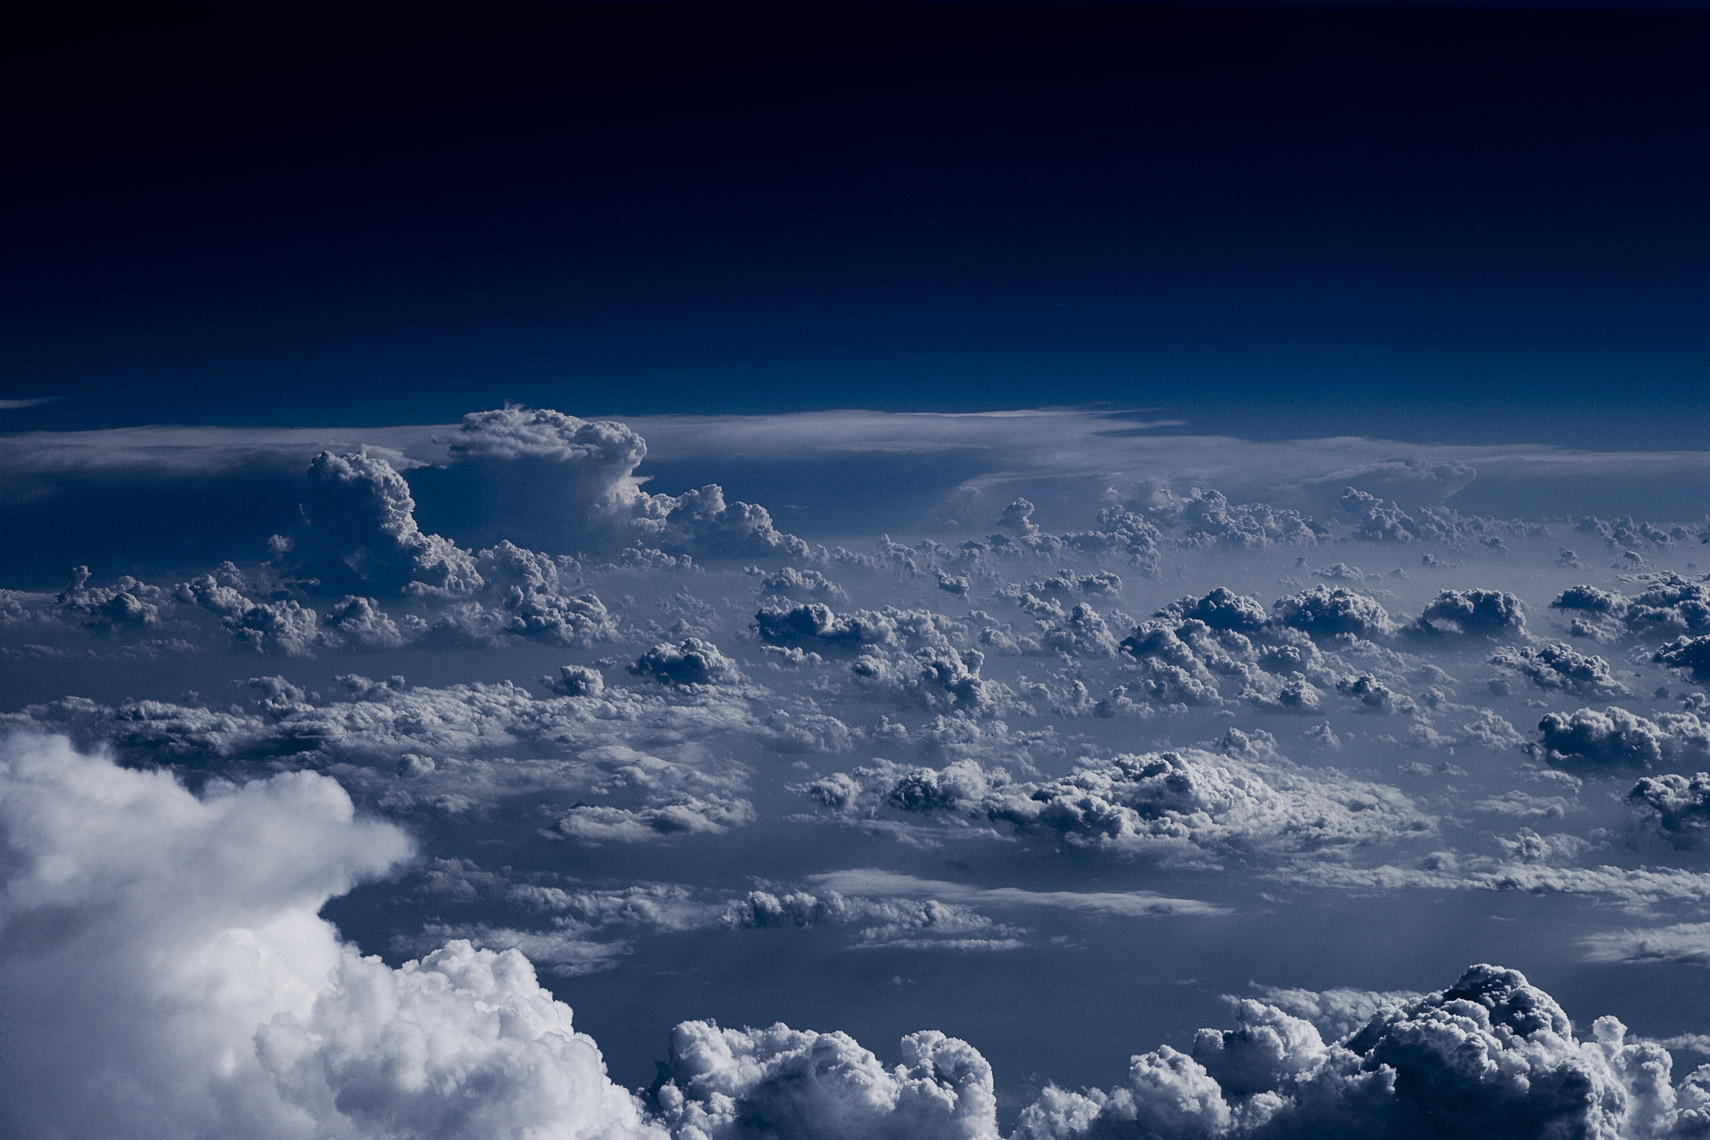 clouds at 30,000 ft